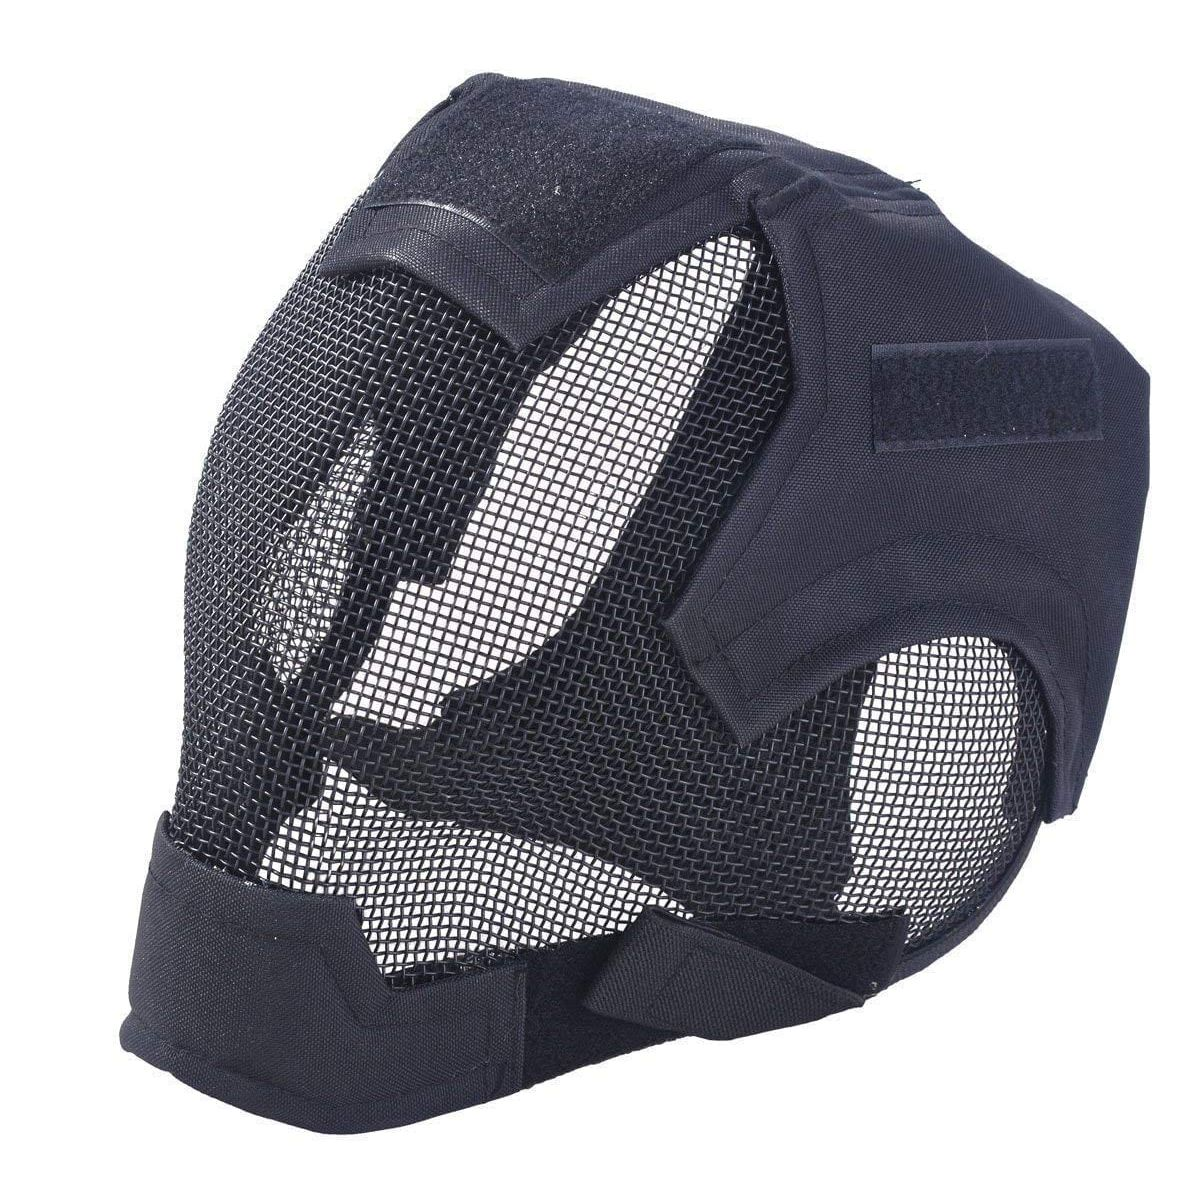 Airsoft Safety Mesh Mask Full Face & Ears Protection Fencing black